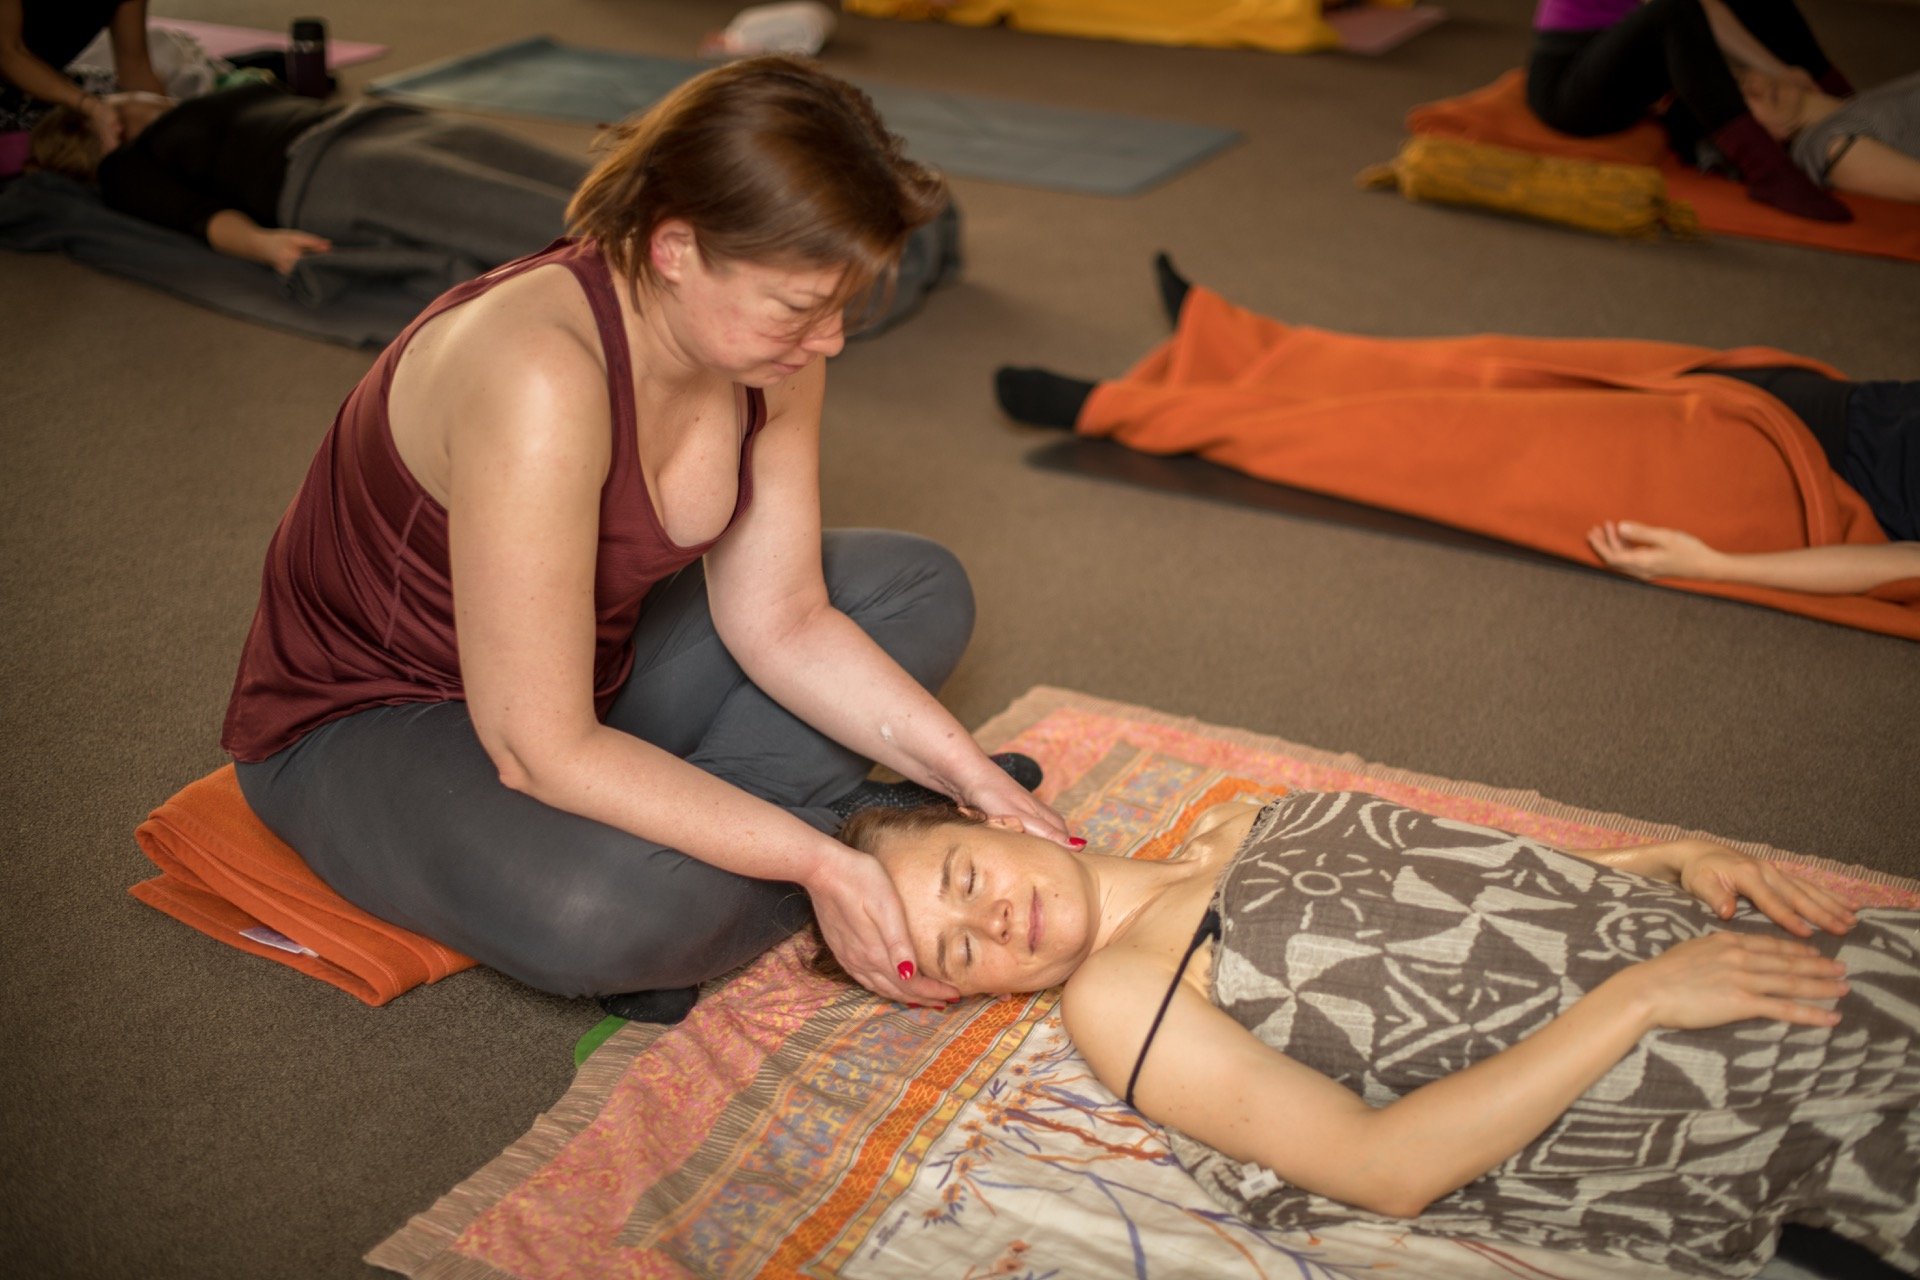 A-New-Beginning-Hie-Kim-Yoga-Retreat-Alina-Matis-Photography-076 - Hie Kim Yoga - Yoga Retreat - Yoga Workshops und Reisen